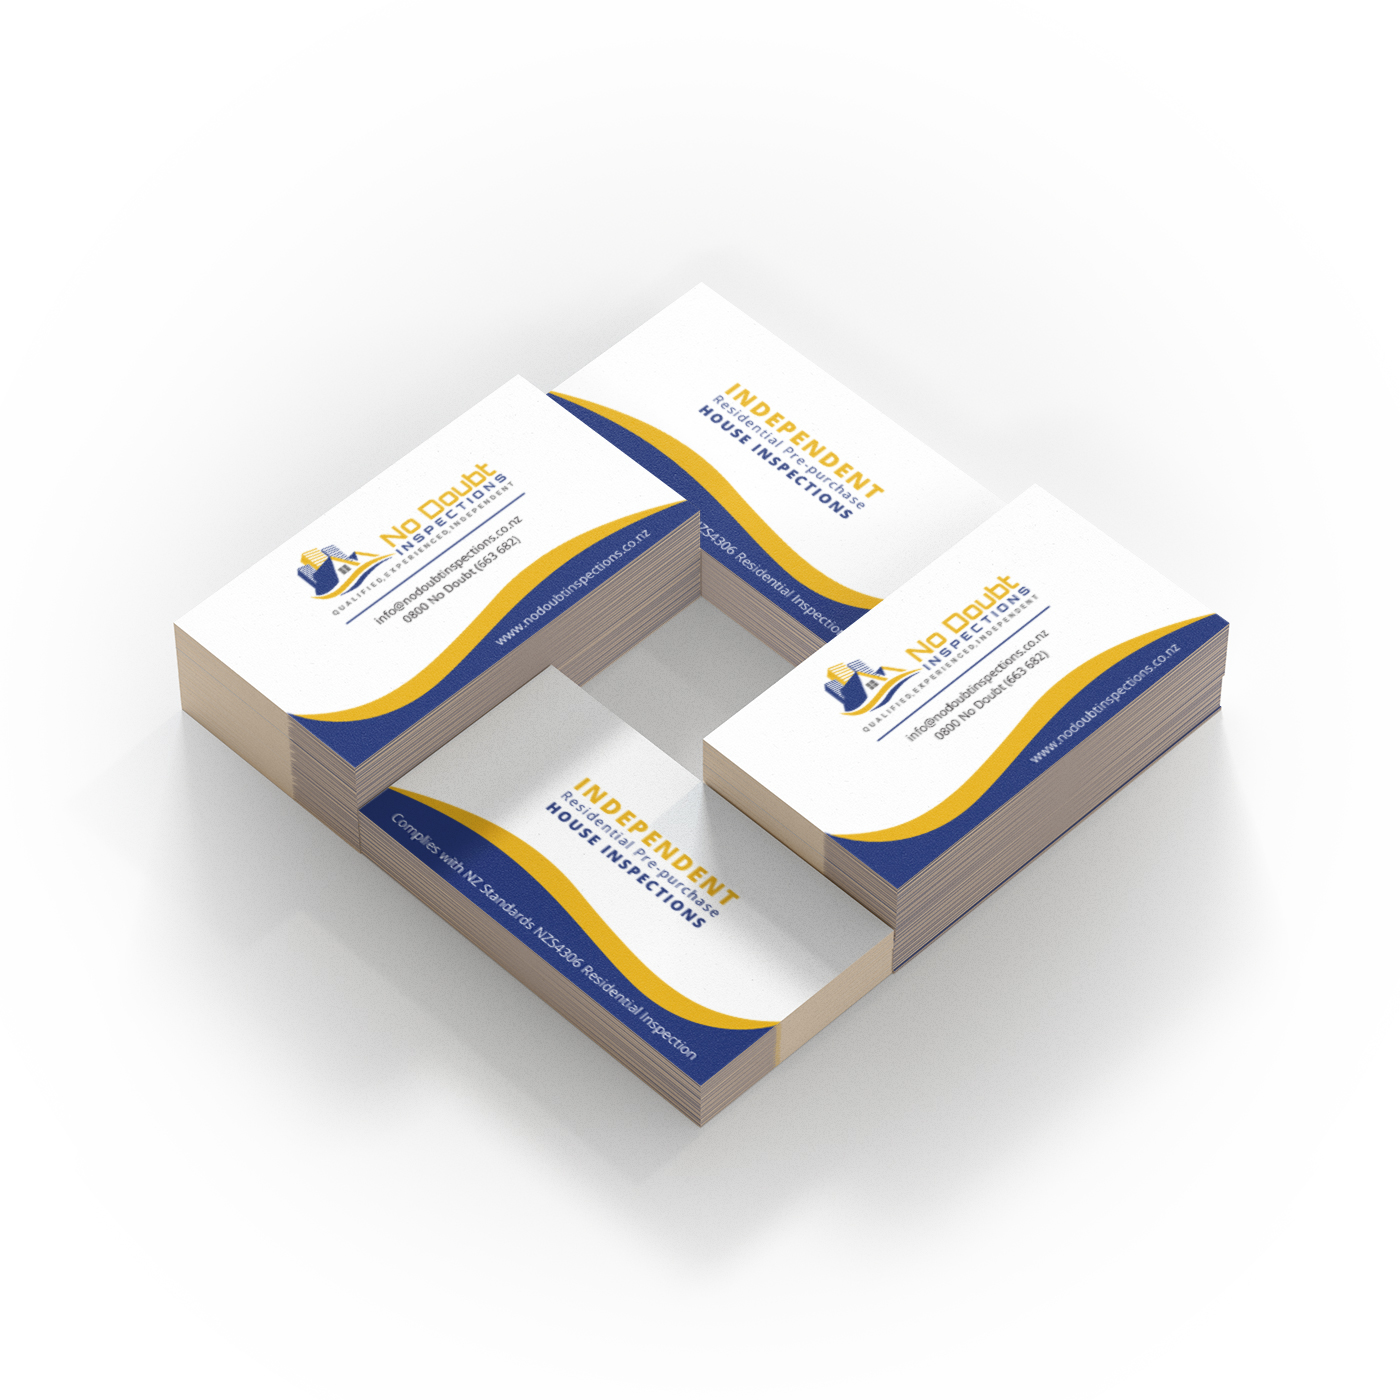 No Doubt Business Card Design - Graphic Design